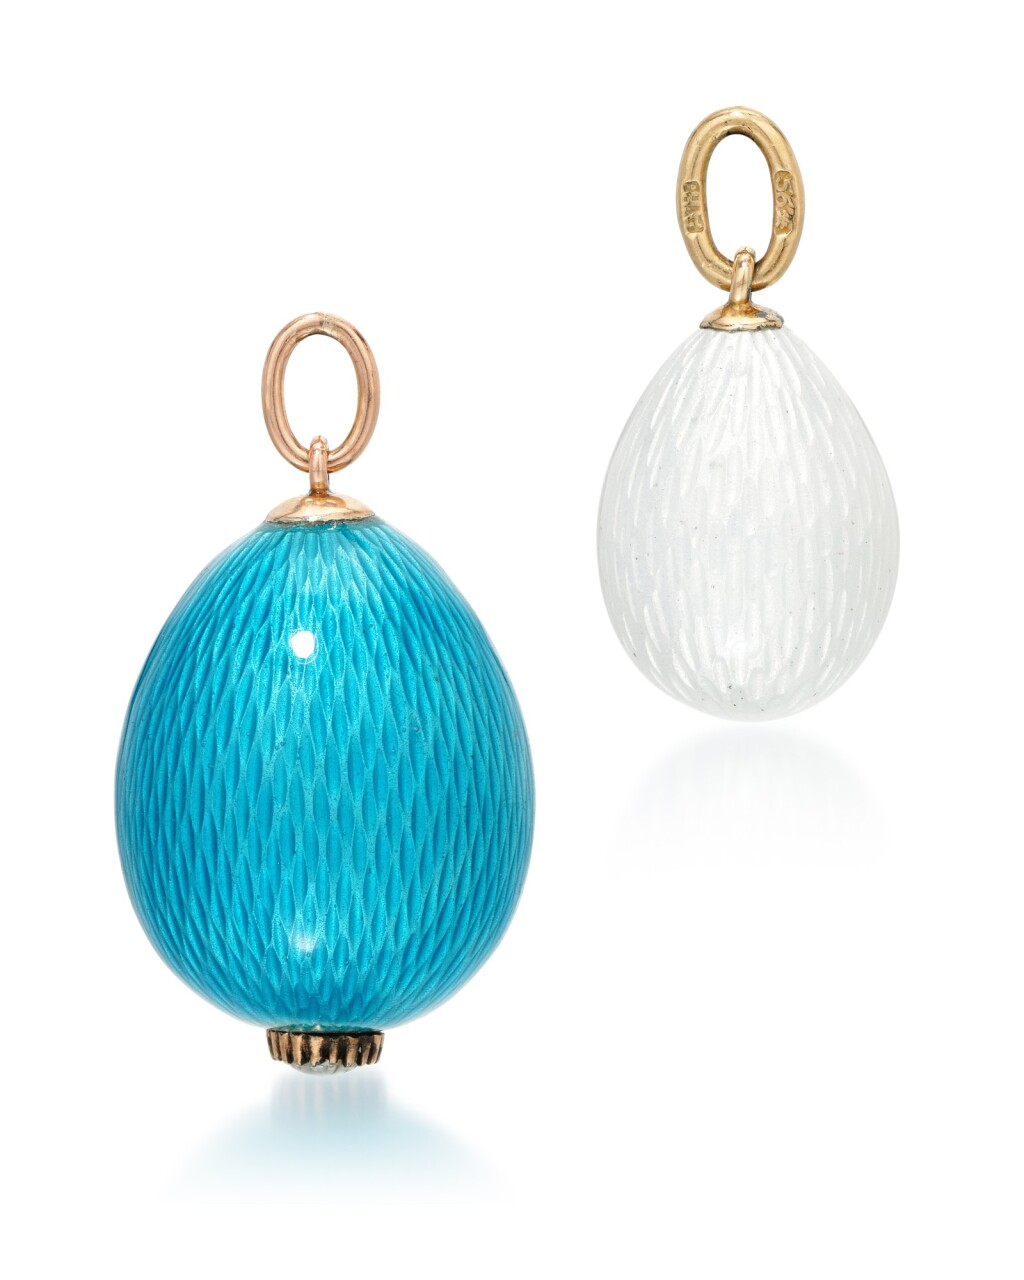 TWO GUILLOCHÉ ENAMELLED EGG PENDANTS, THE WHITE EGG BY FABERGÉ, WORKMASTER AUGUST HOLMSTRÖM, ST PETERSBURG, CIRCA 1890